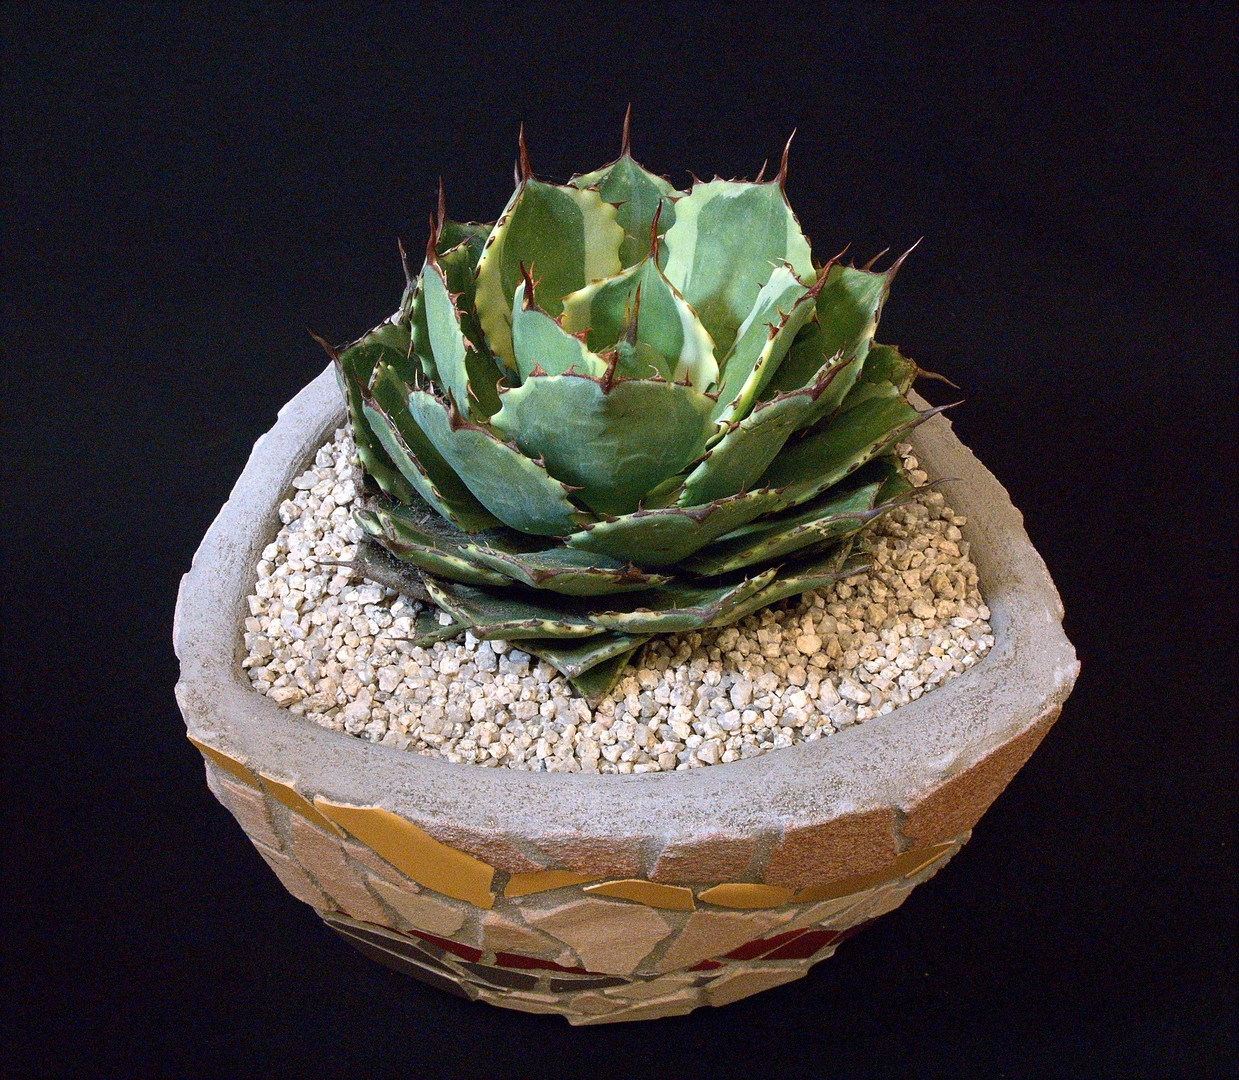 SCCSS 2020 March - Winner Novice Succulent - Terri Straub - Agave potatorum 'Kichiokan' marginata